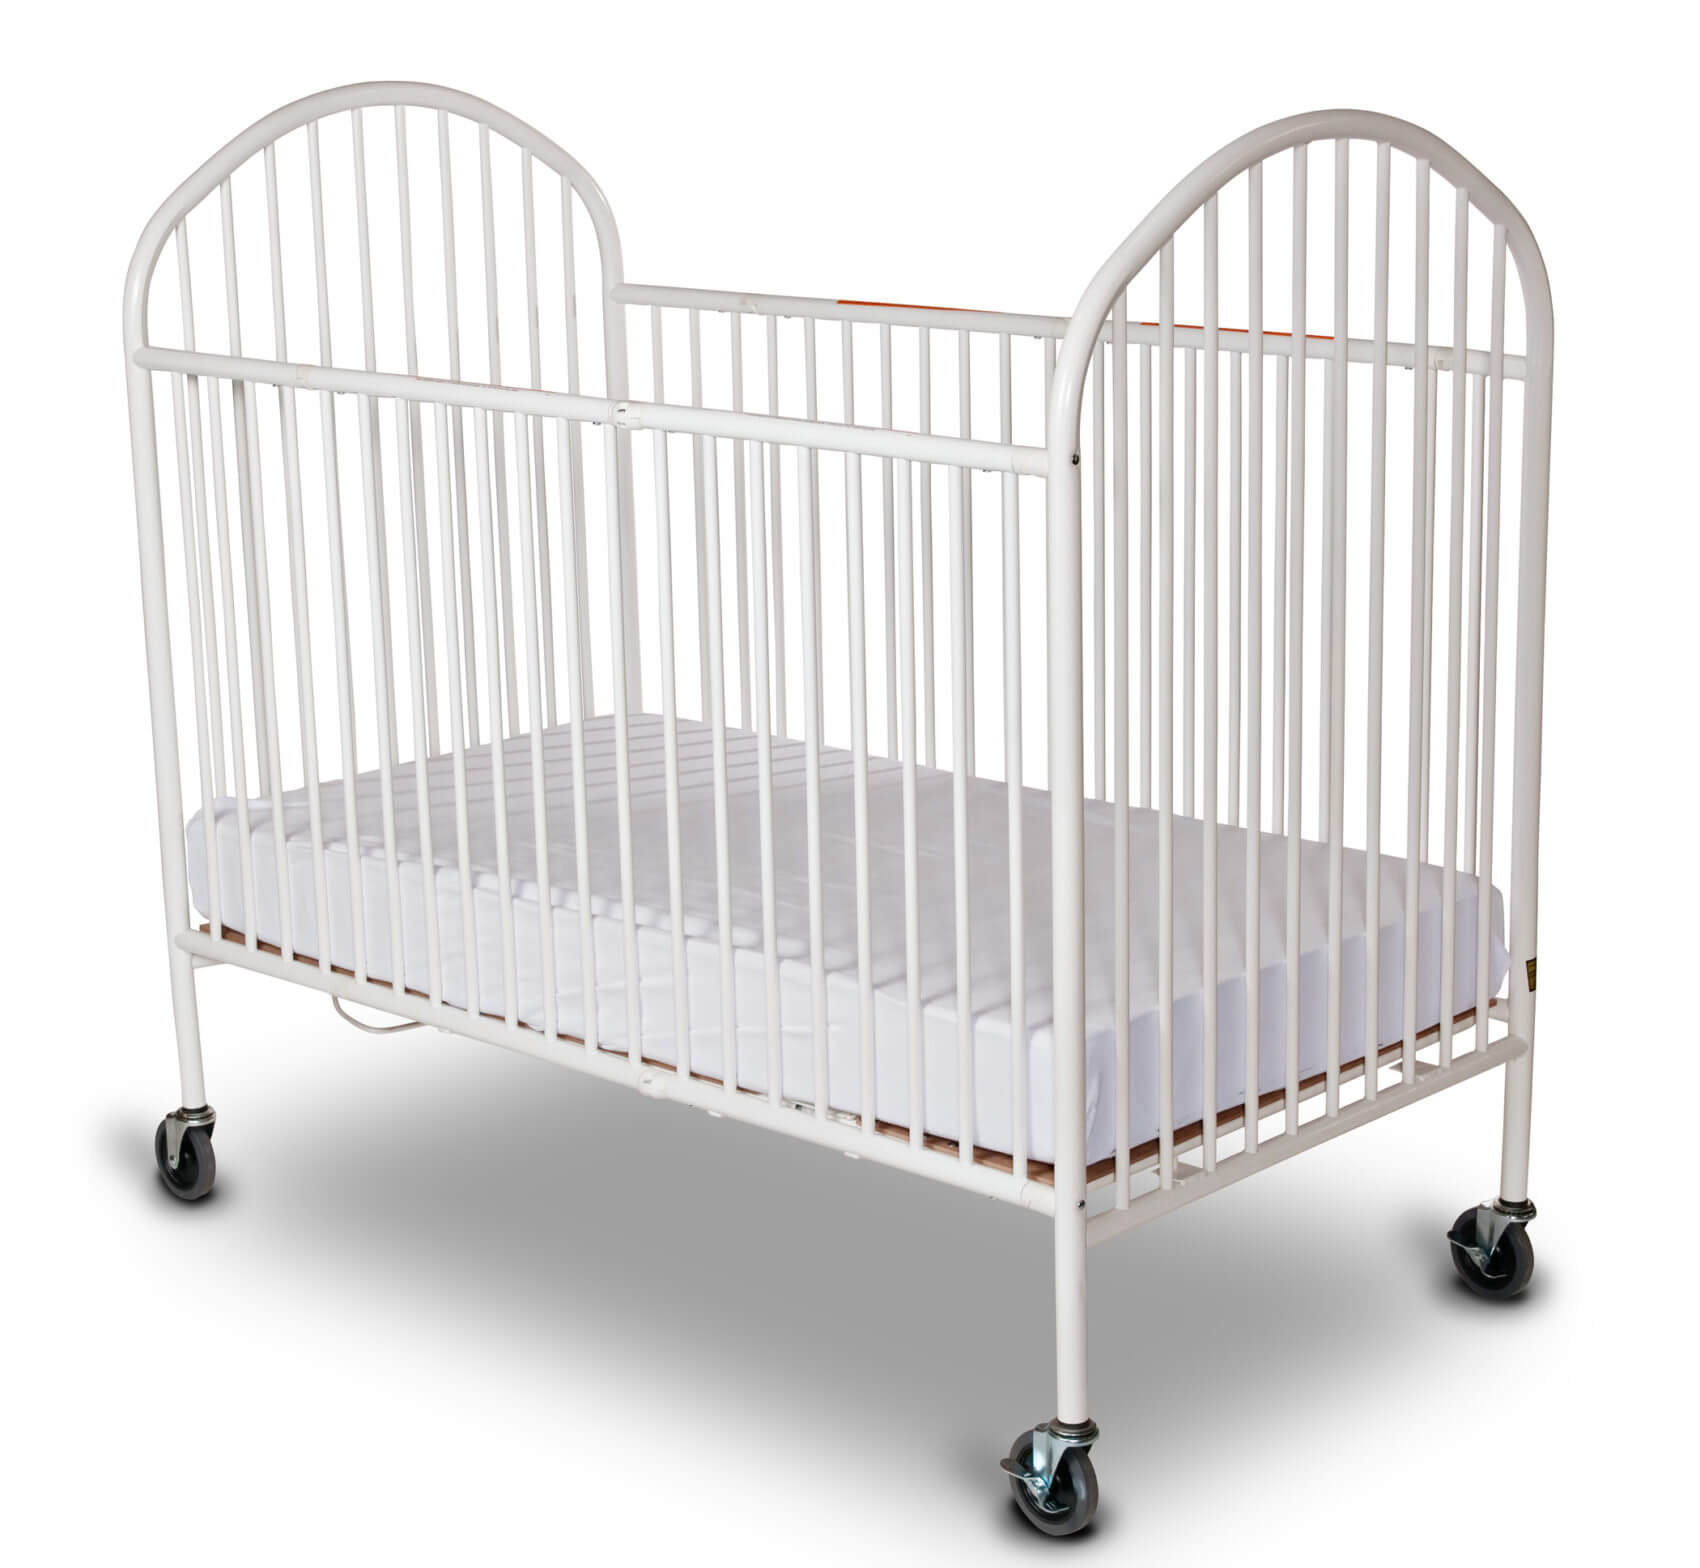 pinnacle full size folding crib mattress not included. Black Bedroom Furniture Sets. Home Design Ideas